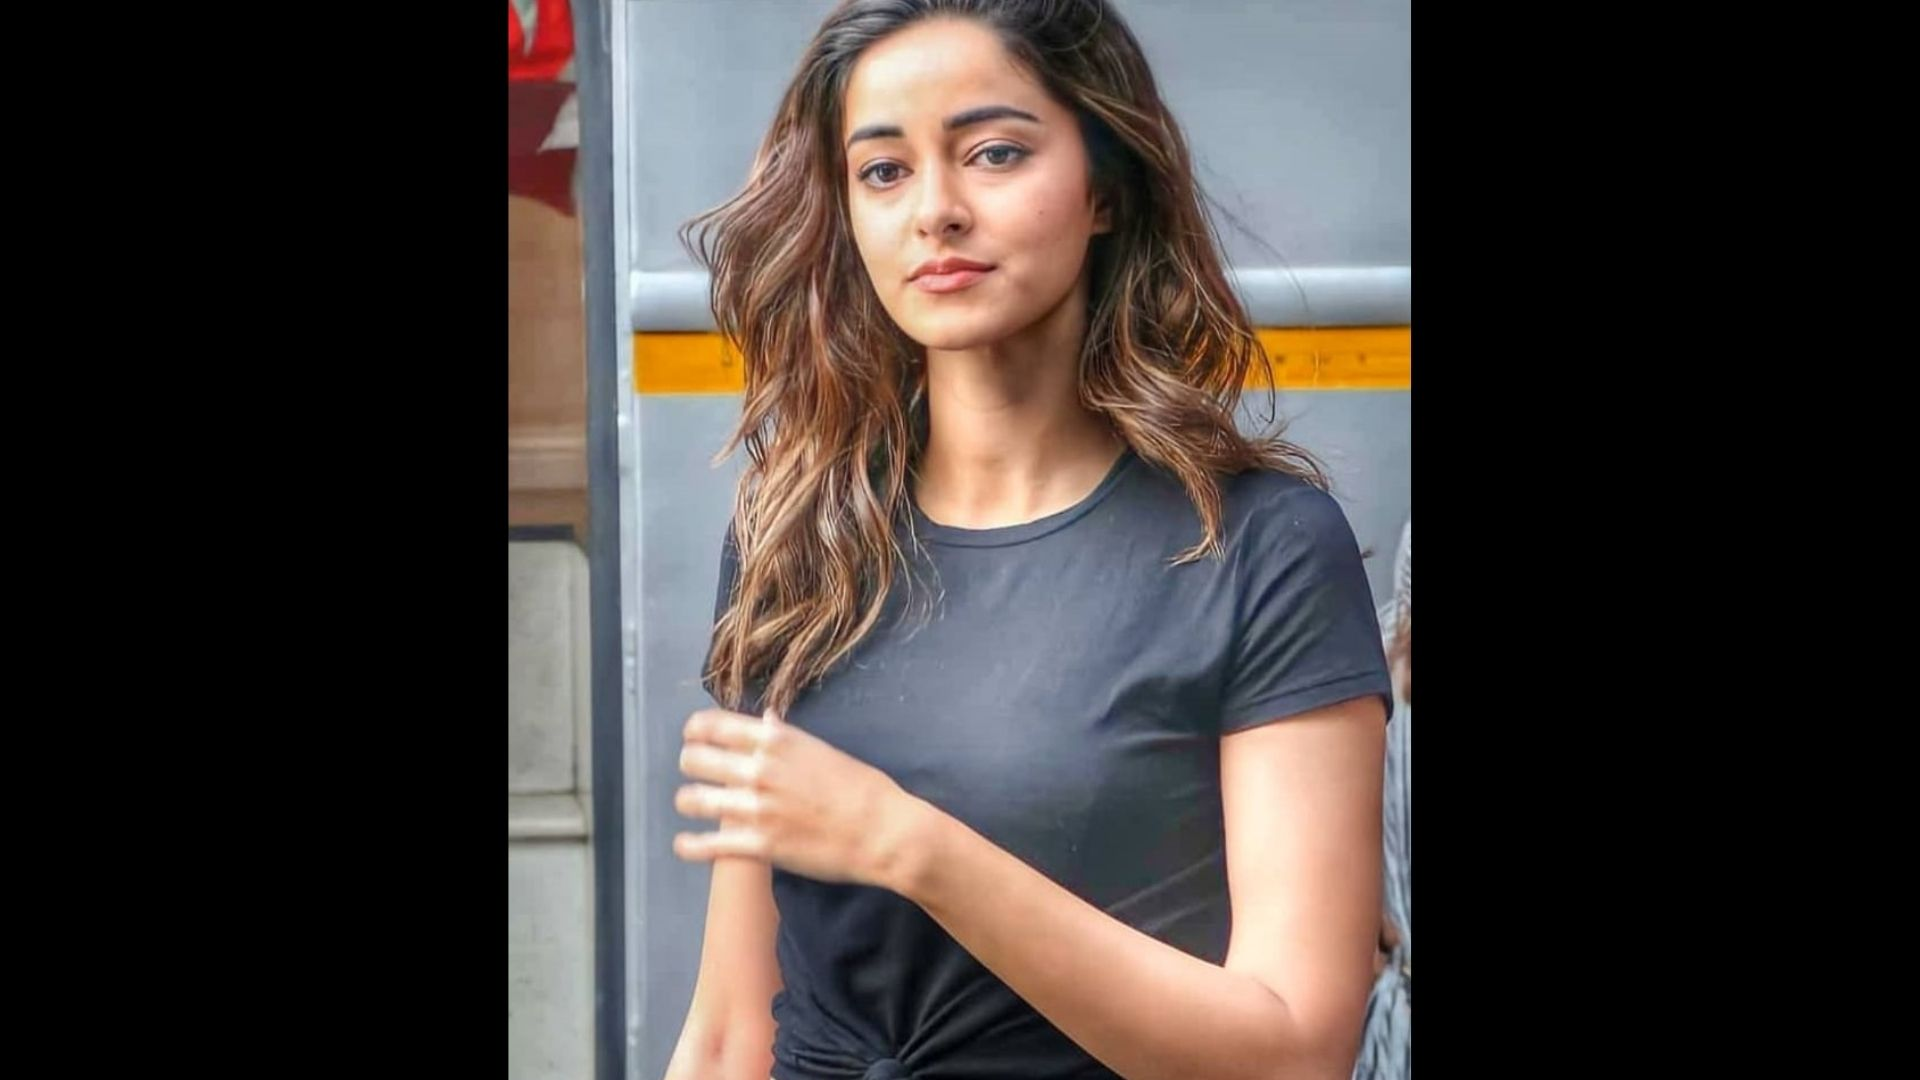 Just In! Ananya Panday House Raided By NCB; From A Bag To Electronic Devices- Here's What All The Officials Seized